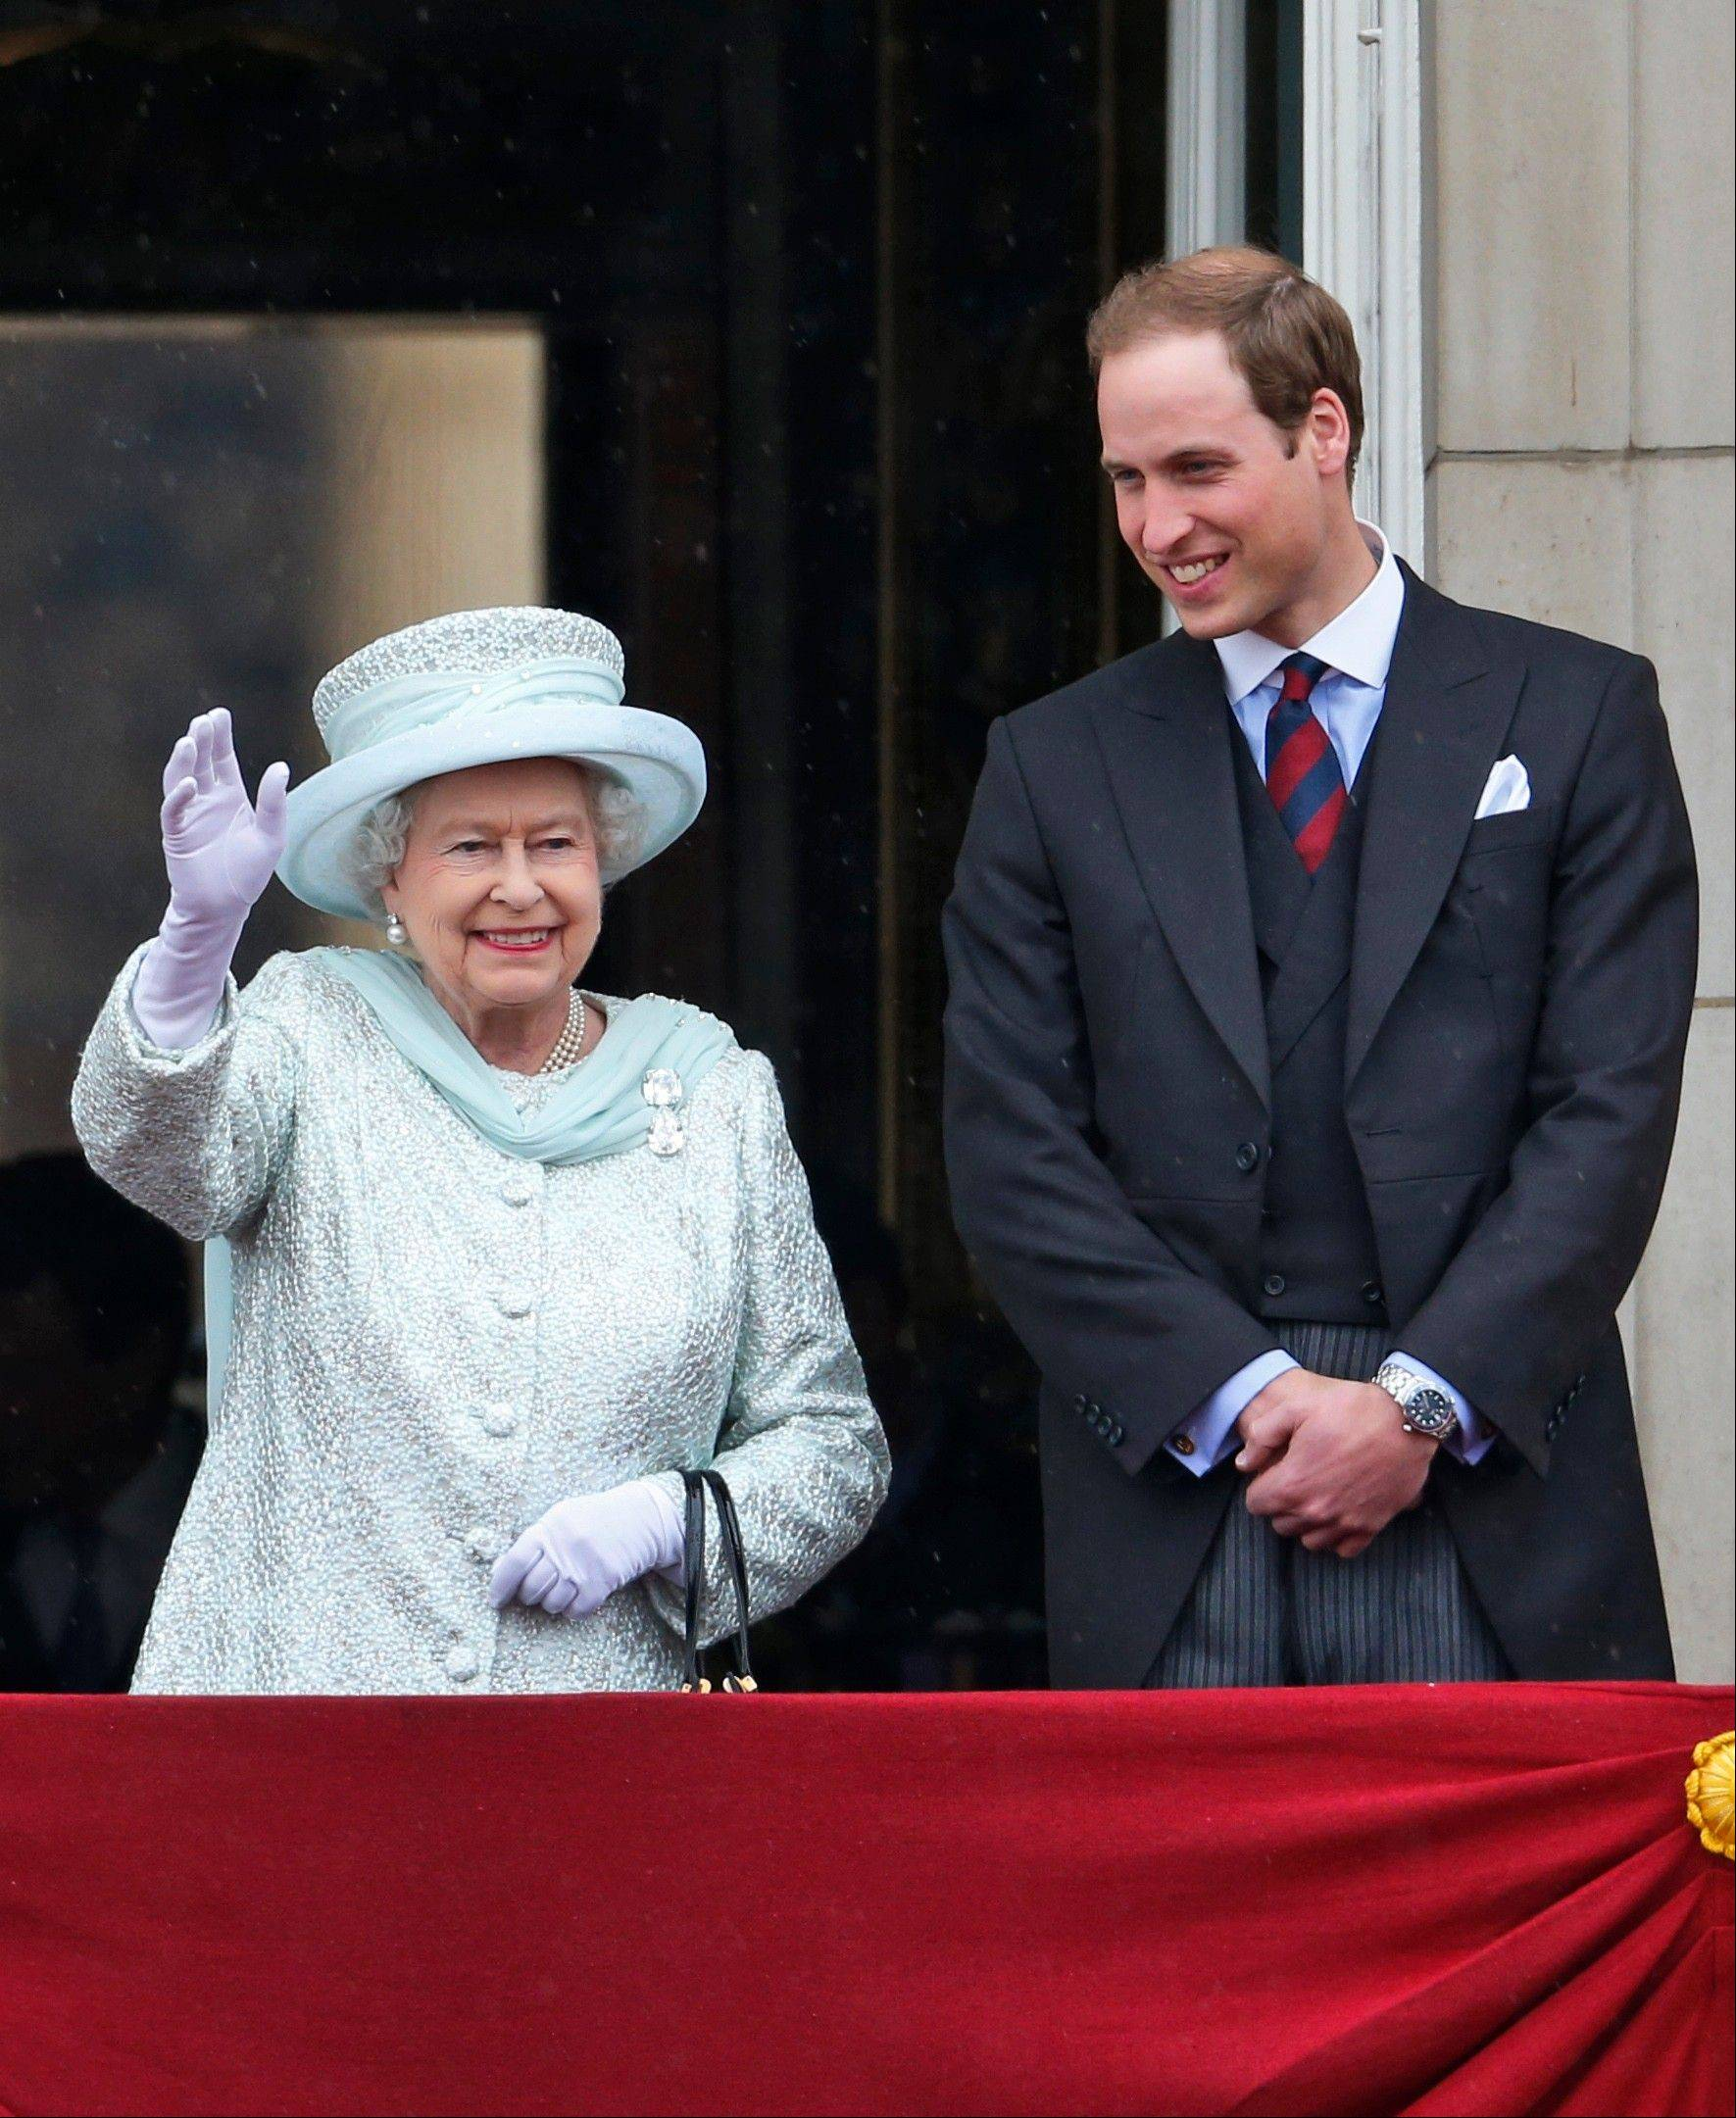 Britain's Queen Elizabeth II accompanied by Prince William appears on the balcony of Buckingham Palace in central London, Tuesday, June 5, 2012, to conclude the four-day Diamond Jubilee celebrations to mark the 60th anniversary of the Queen's accession to the throne.